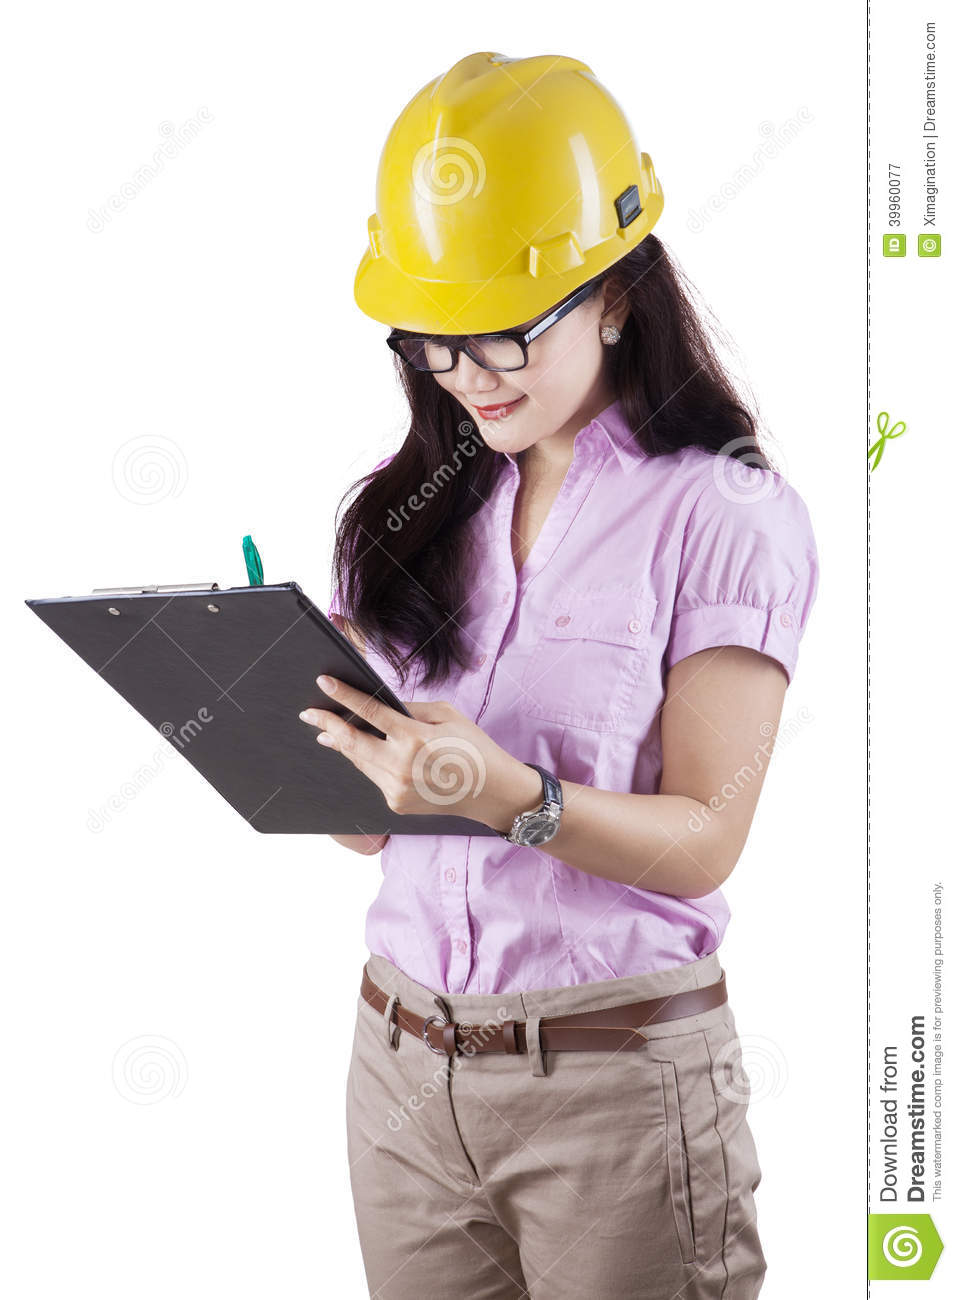 Female Supervisor Making Checklist Stock Photo - Image: 39960077